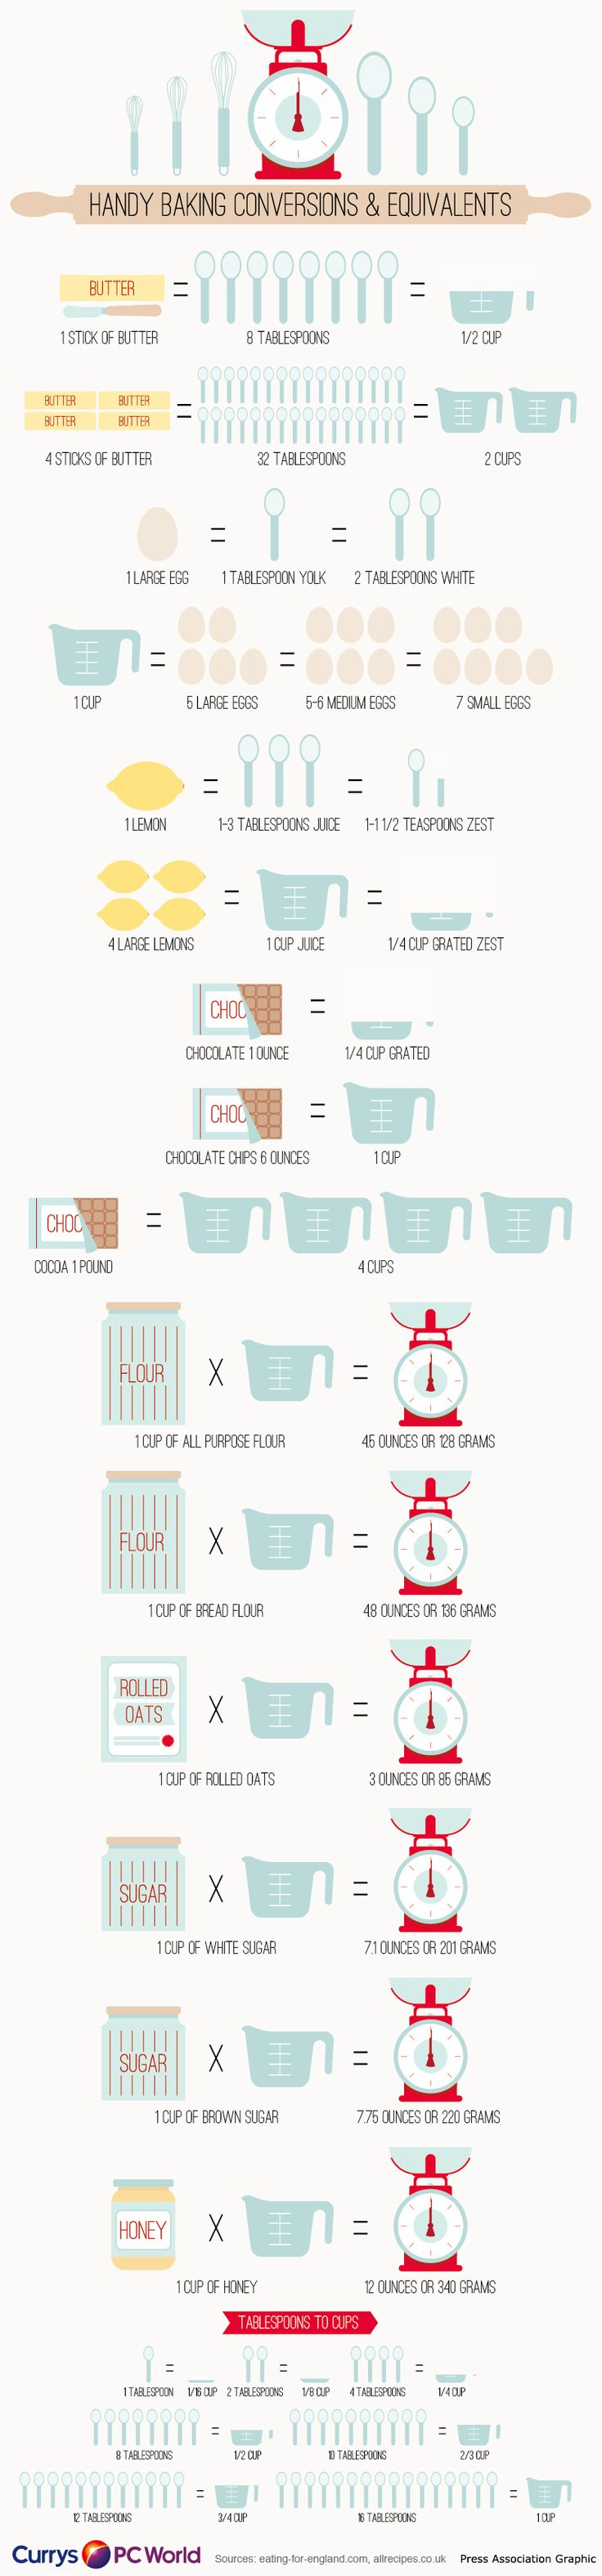 #Kitchen conversions for #baking explained - #Infographic - http://www.finedininglovers.com/blog/curious-bites/kitchen-conversions-for-baking/